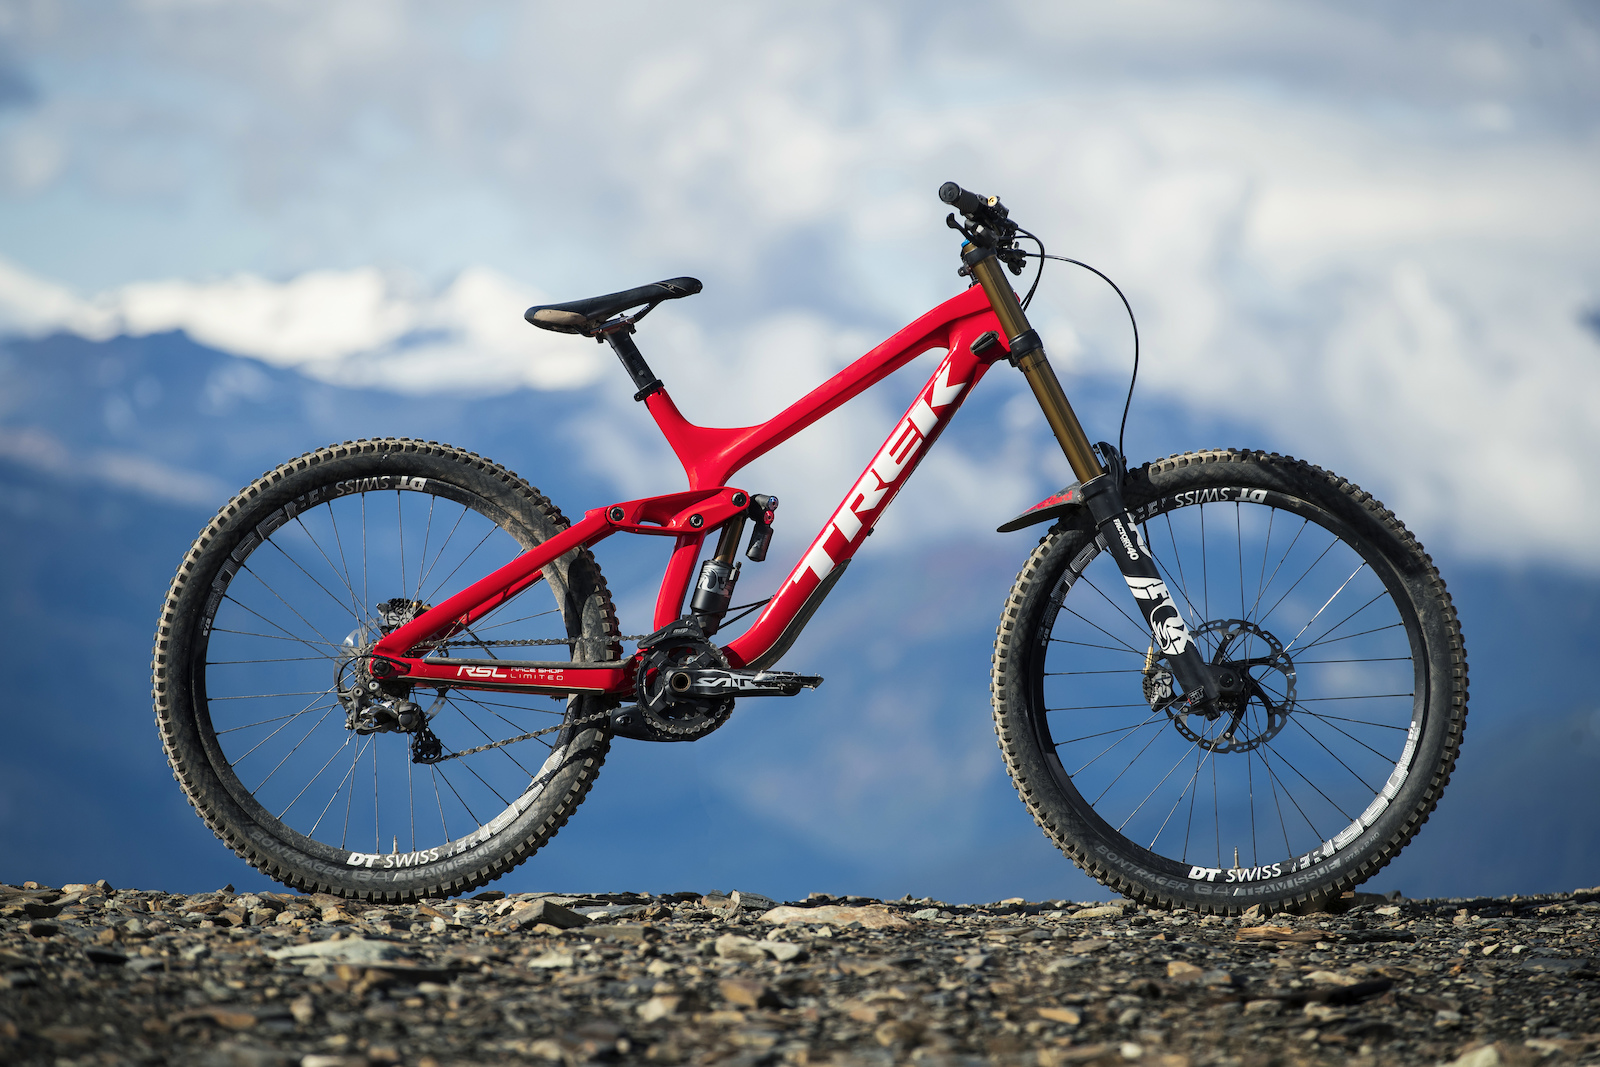 d7fc4b41682 Trek Session 9.9 DH 27.5 - Review - Pinkbike